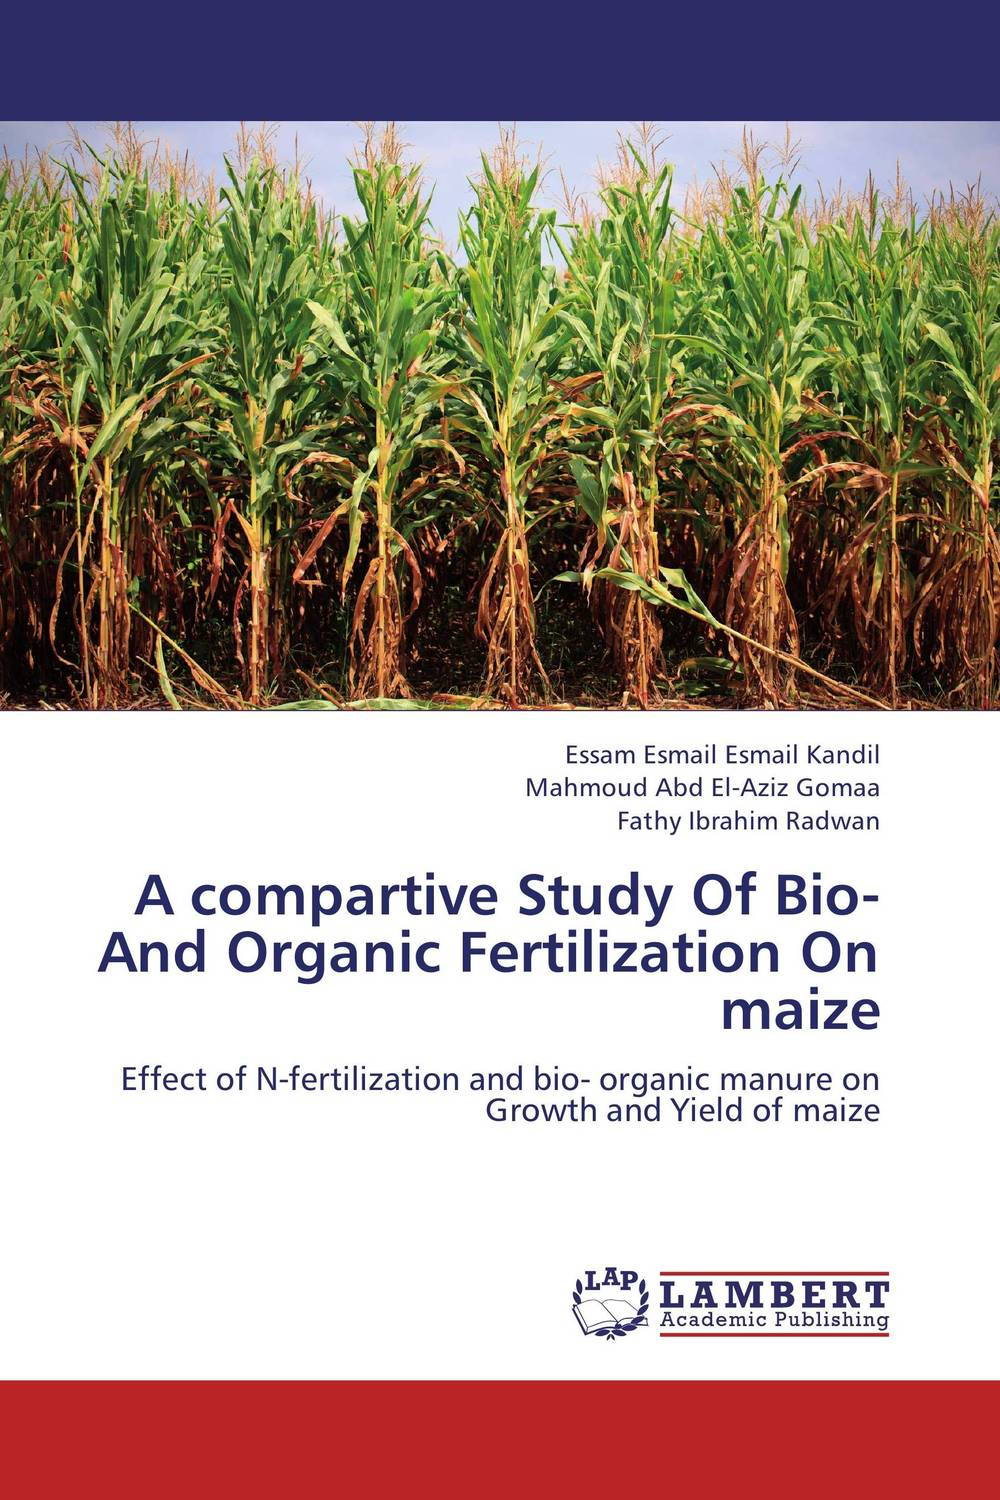 A compartive Study Of Bio- And Organic Fertilization On maize subodh kumar and rakesh kumar response of organic nutrition and nitrogen on mustard brassica juncea